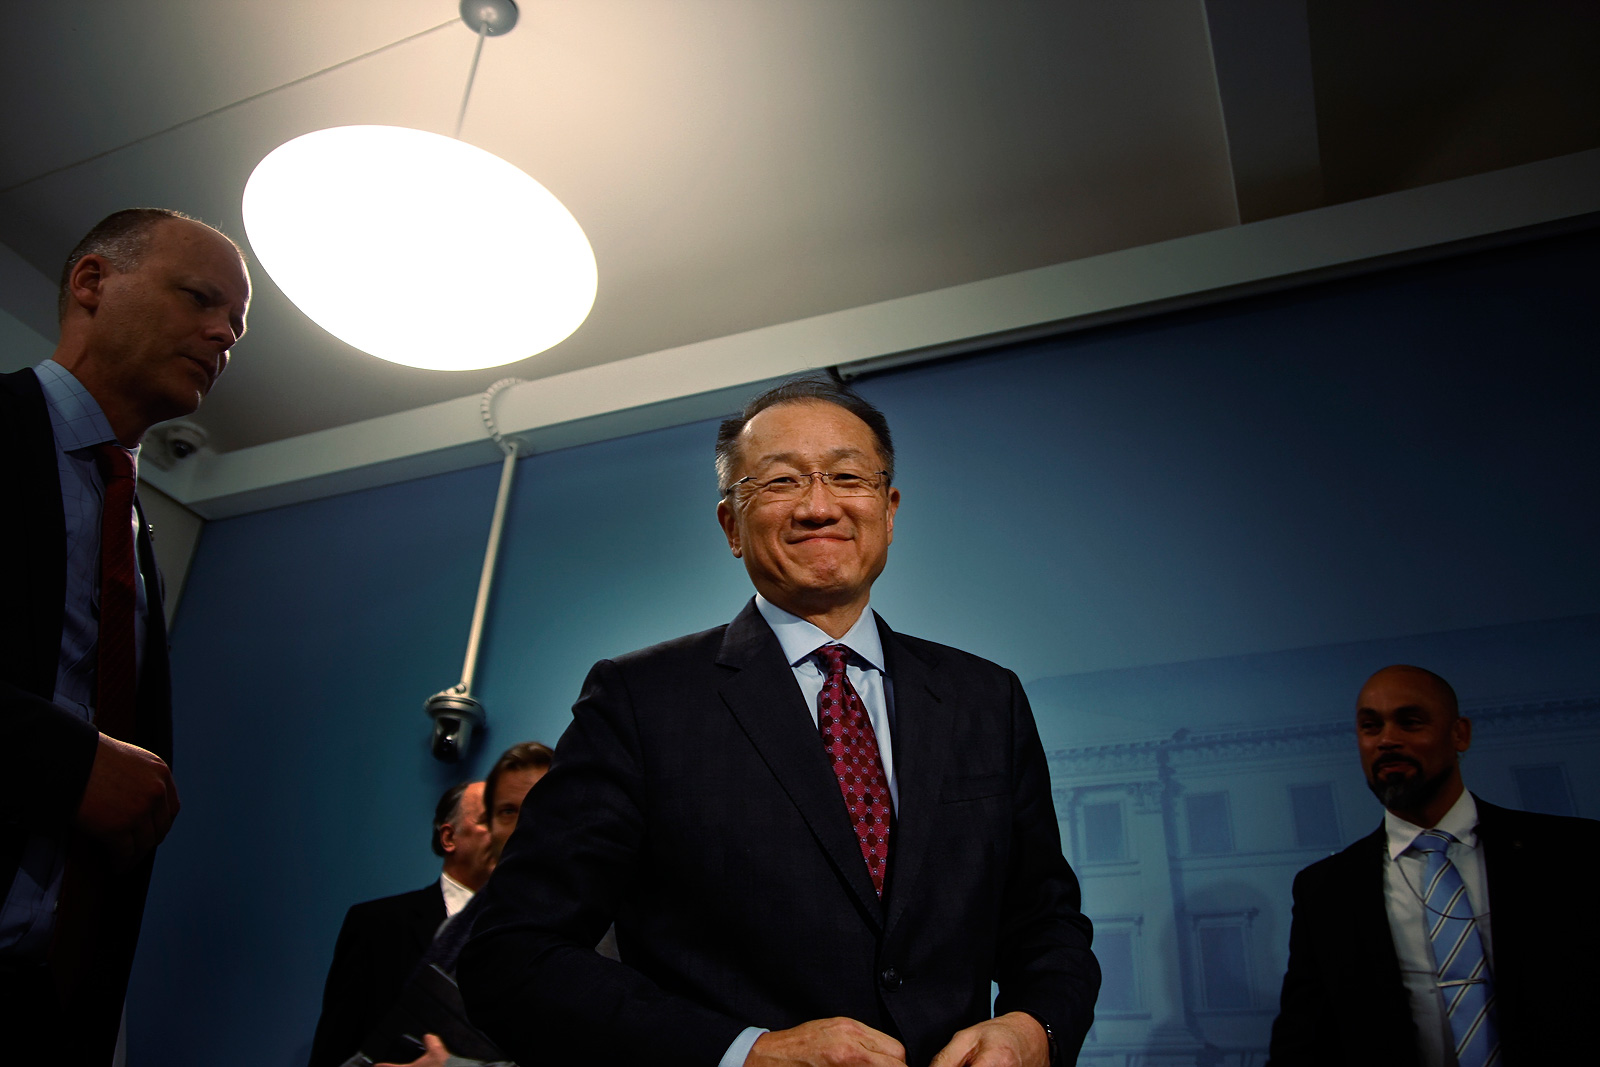 World Bank president Jim Yong Kim arrives to Finland for fight against poverty